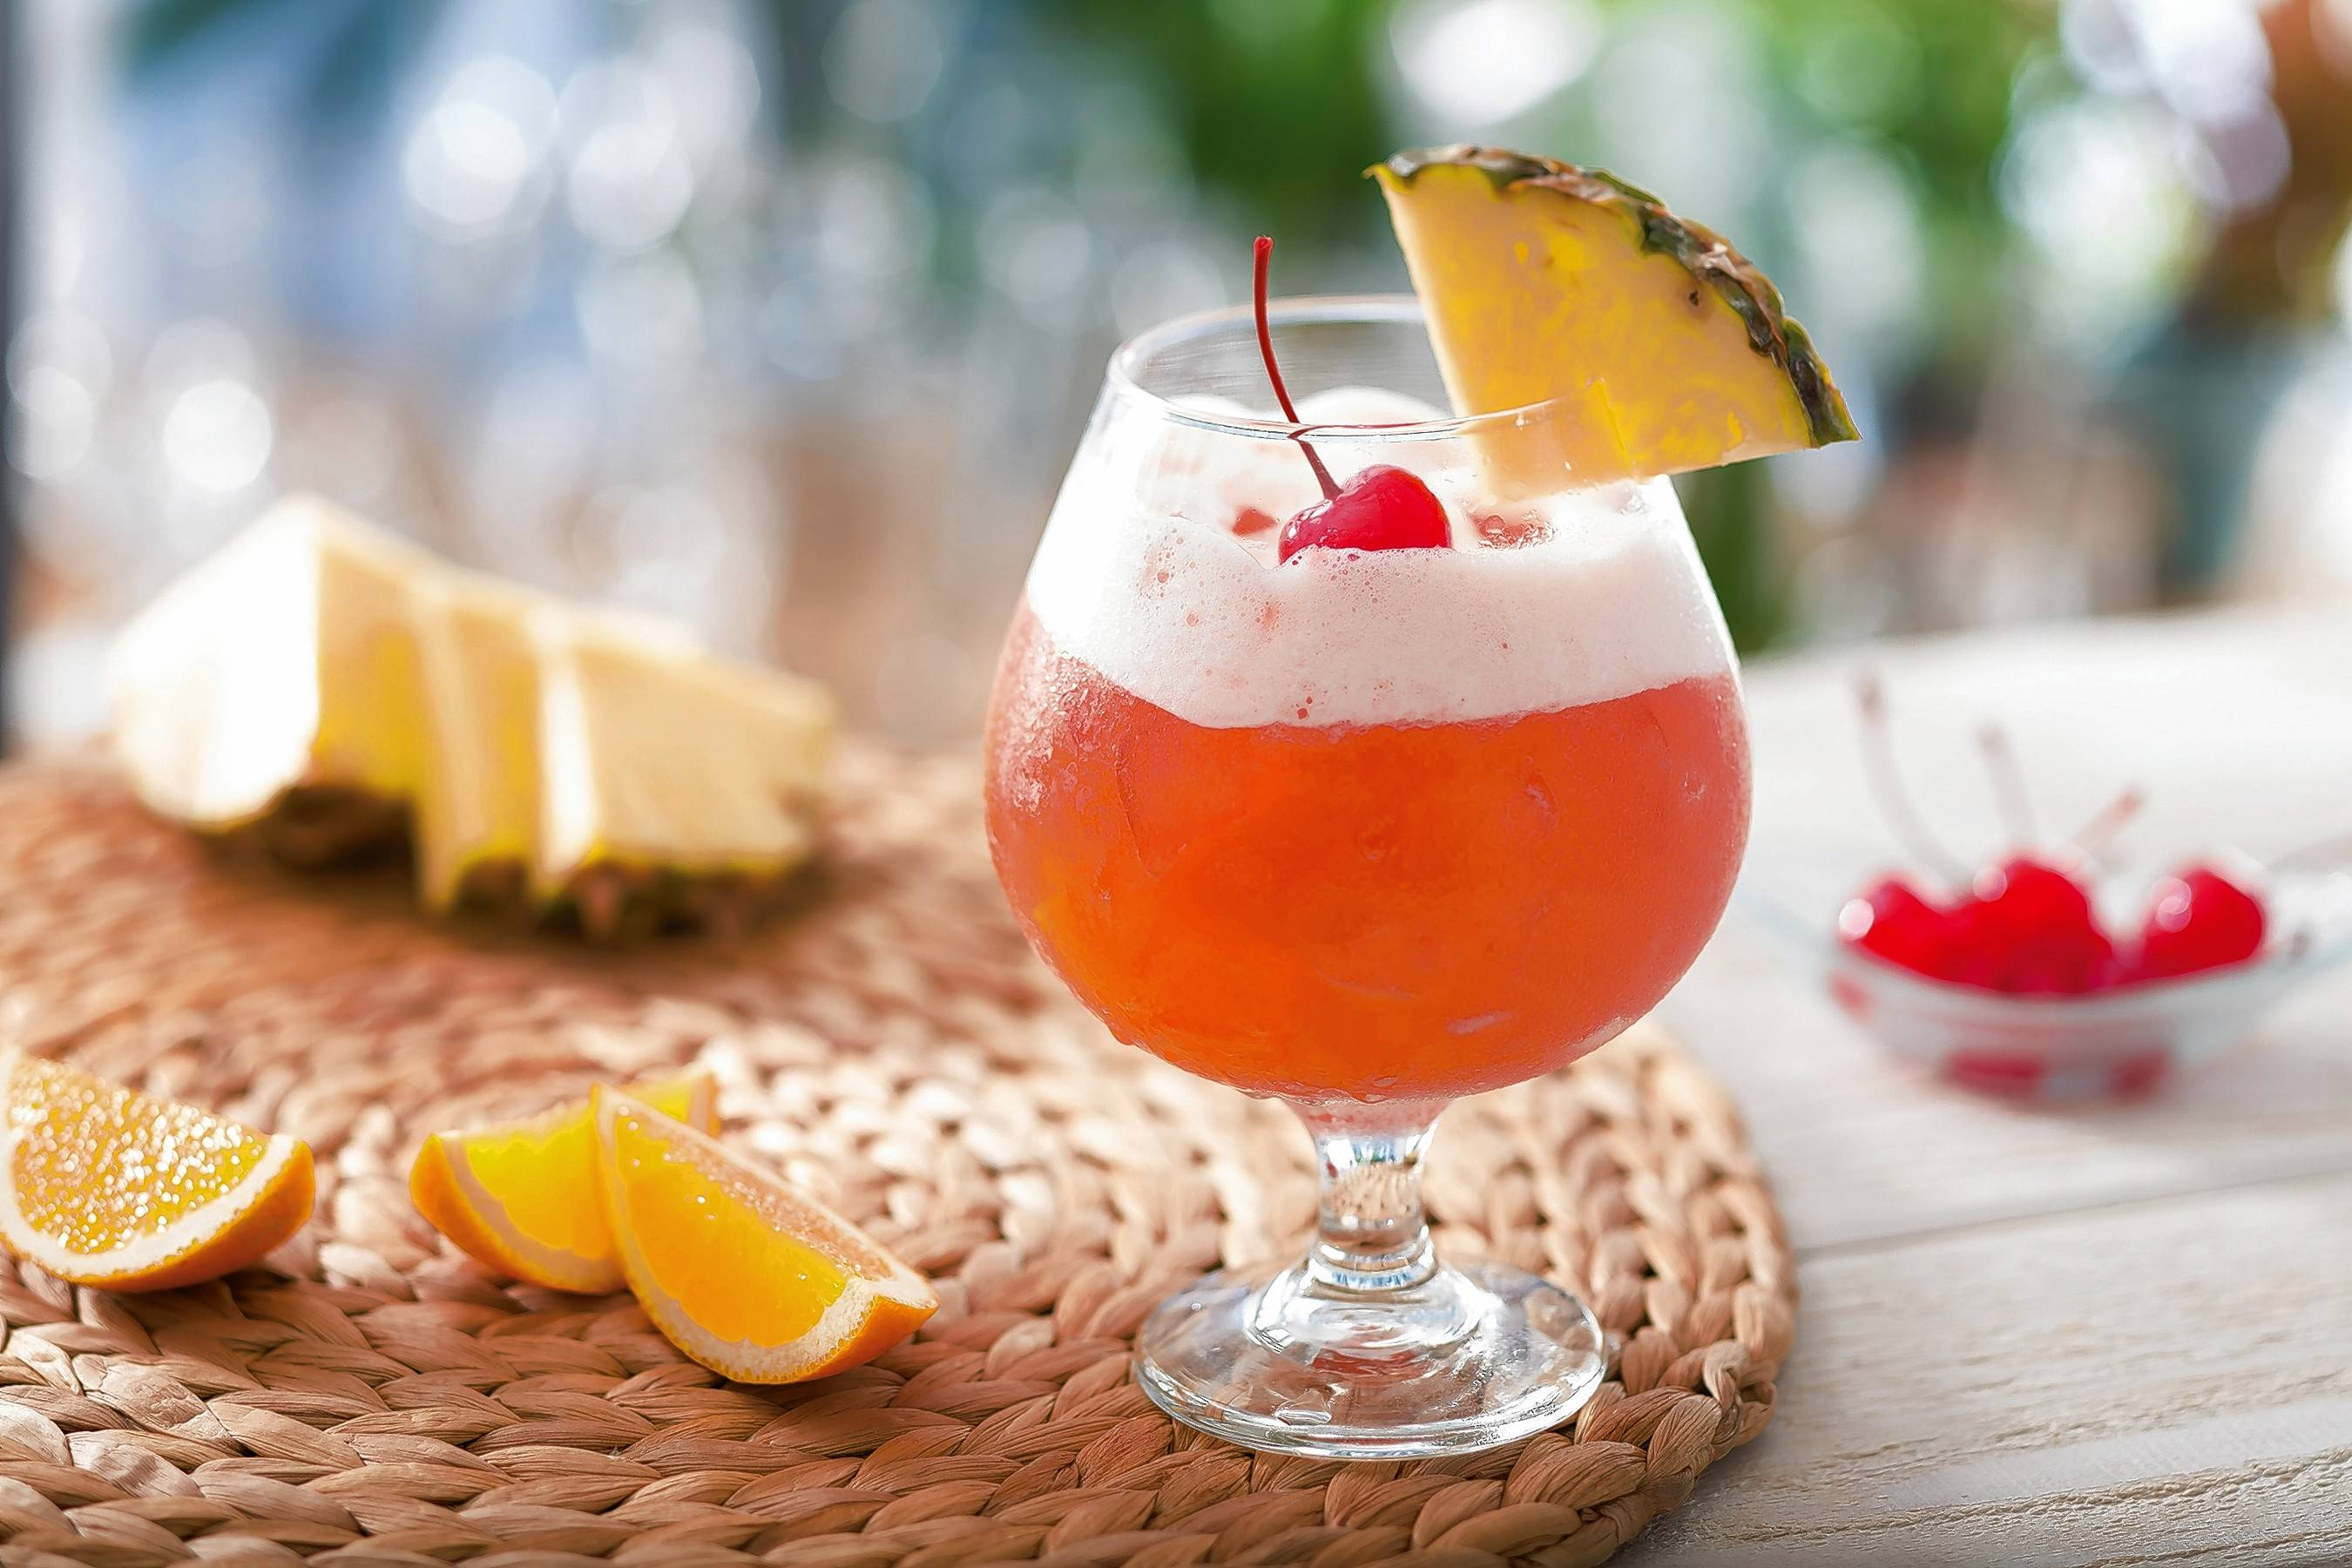 The Bahama Mama will be $5 during Bahama Breeze's Galentine's Day promotion Feb. 11-13.